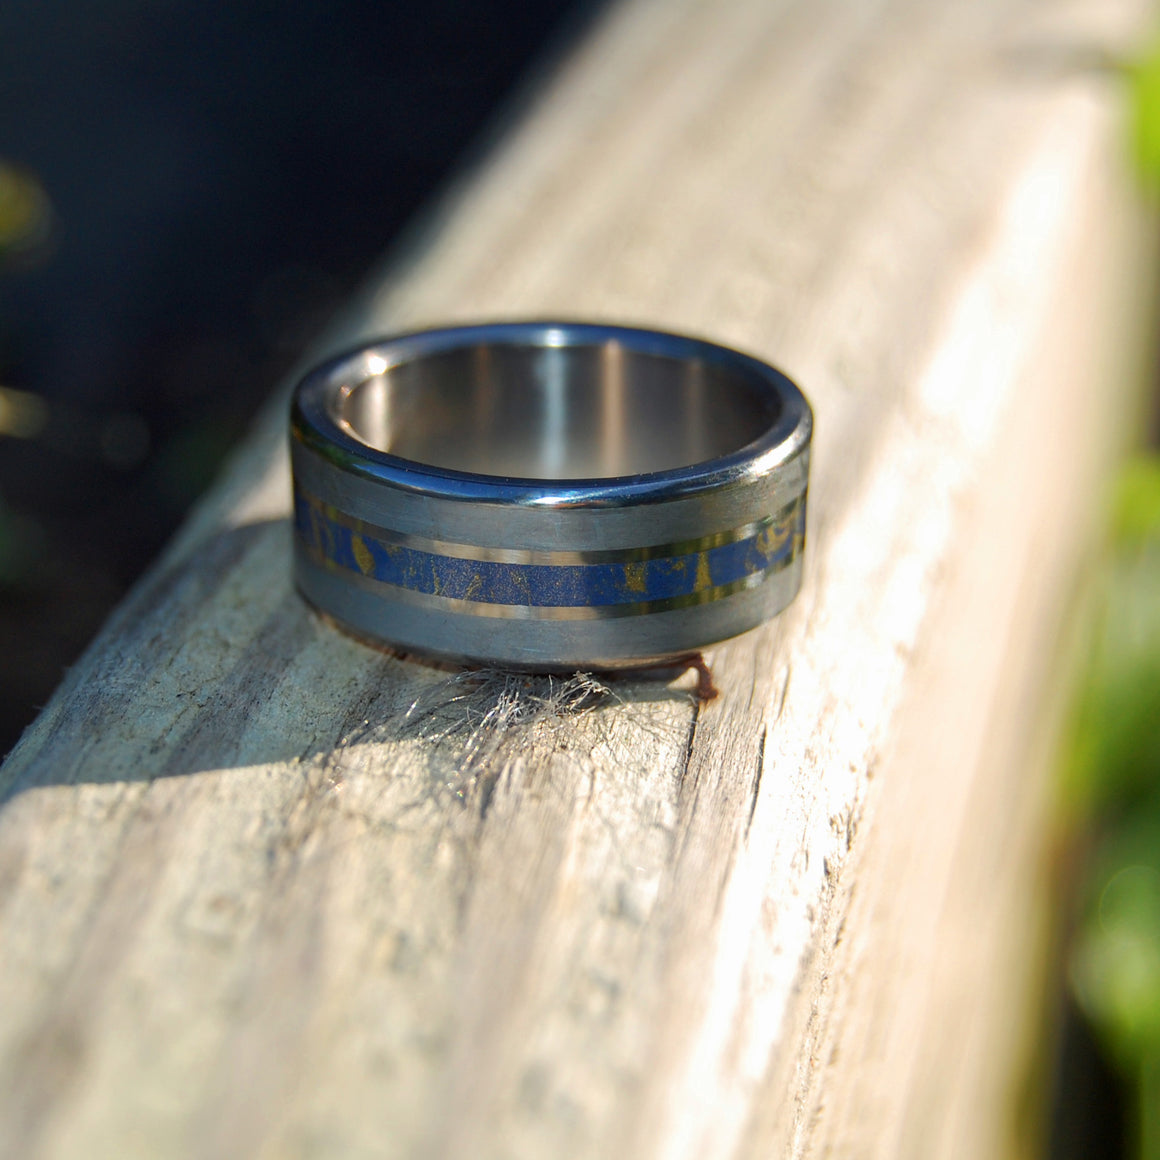 COMET'S TAIL | Meteorite & Blue Gold M3 Mokume Gane Titanium Wedding Rings - Minter and Richter Designs